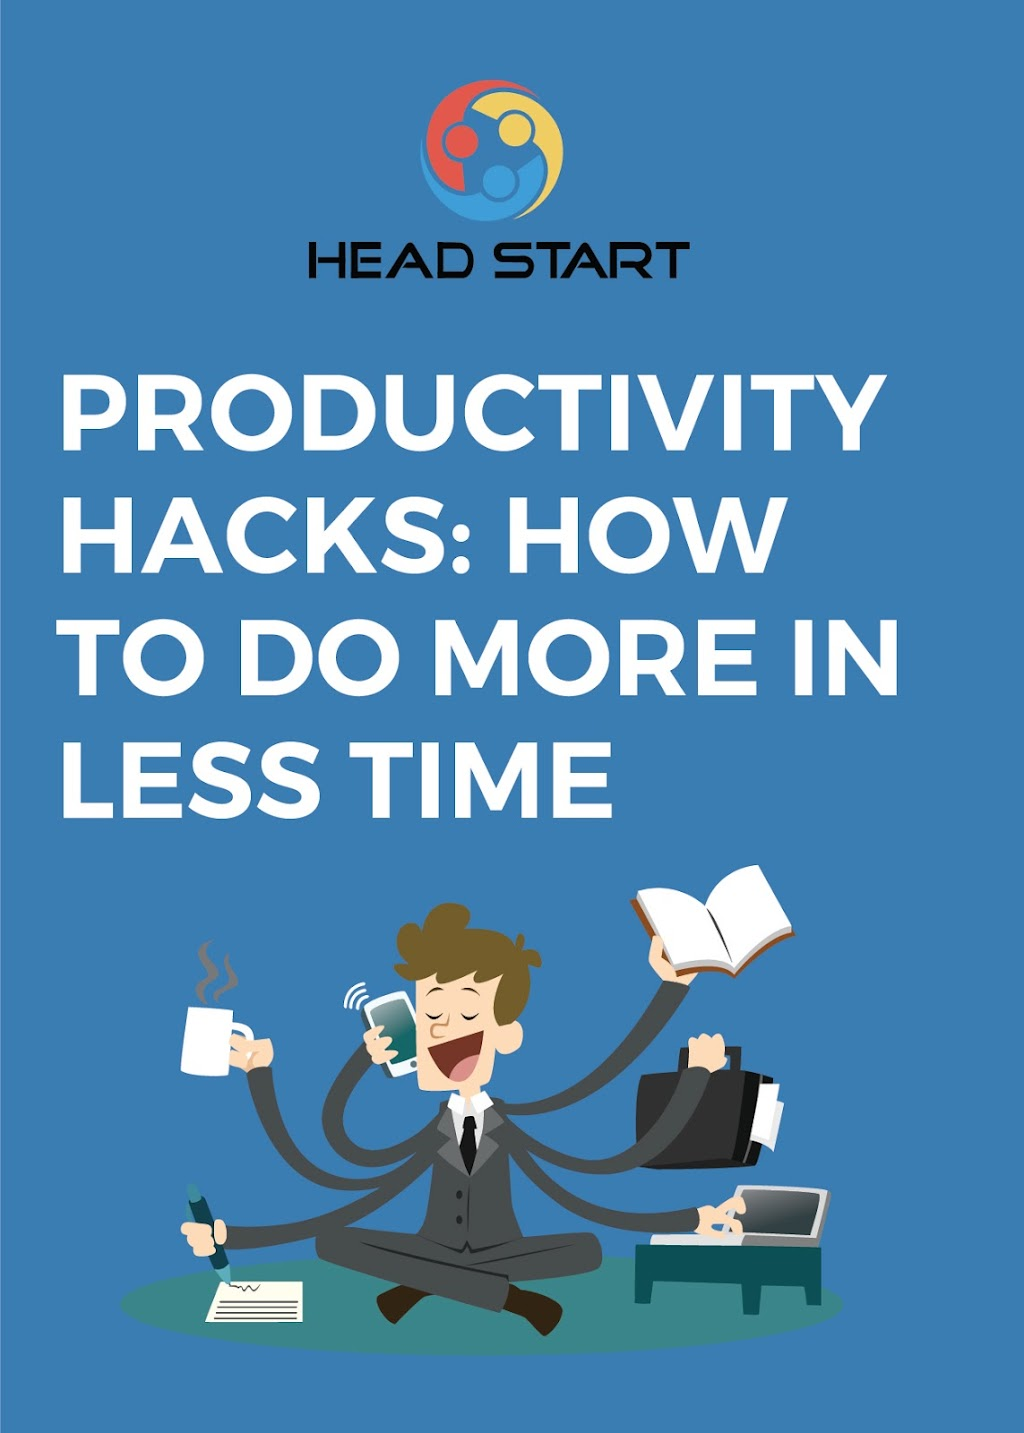 Productivity Hacks: How to Do More in Less Time Head Start Guide